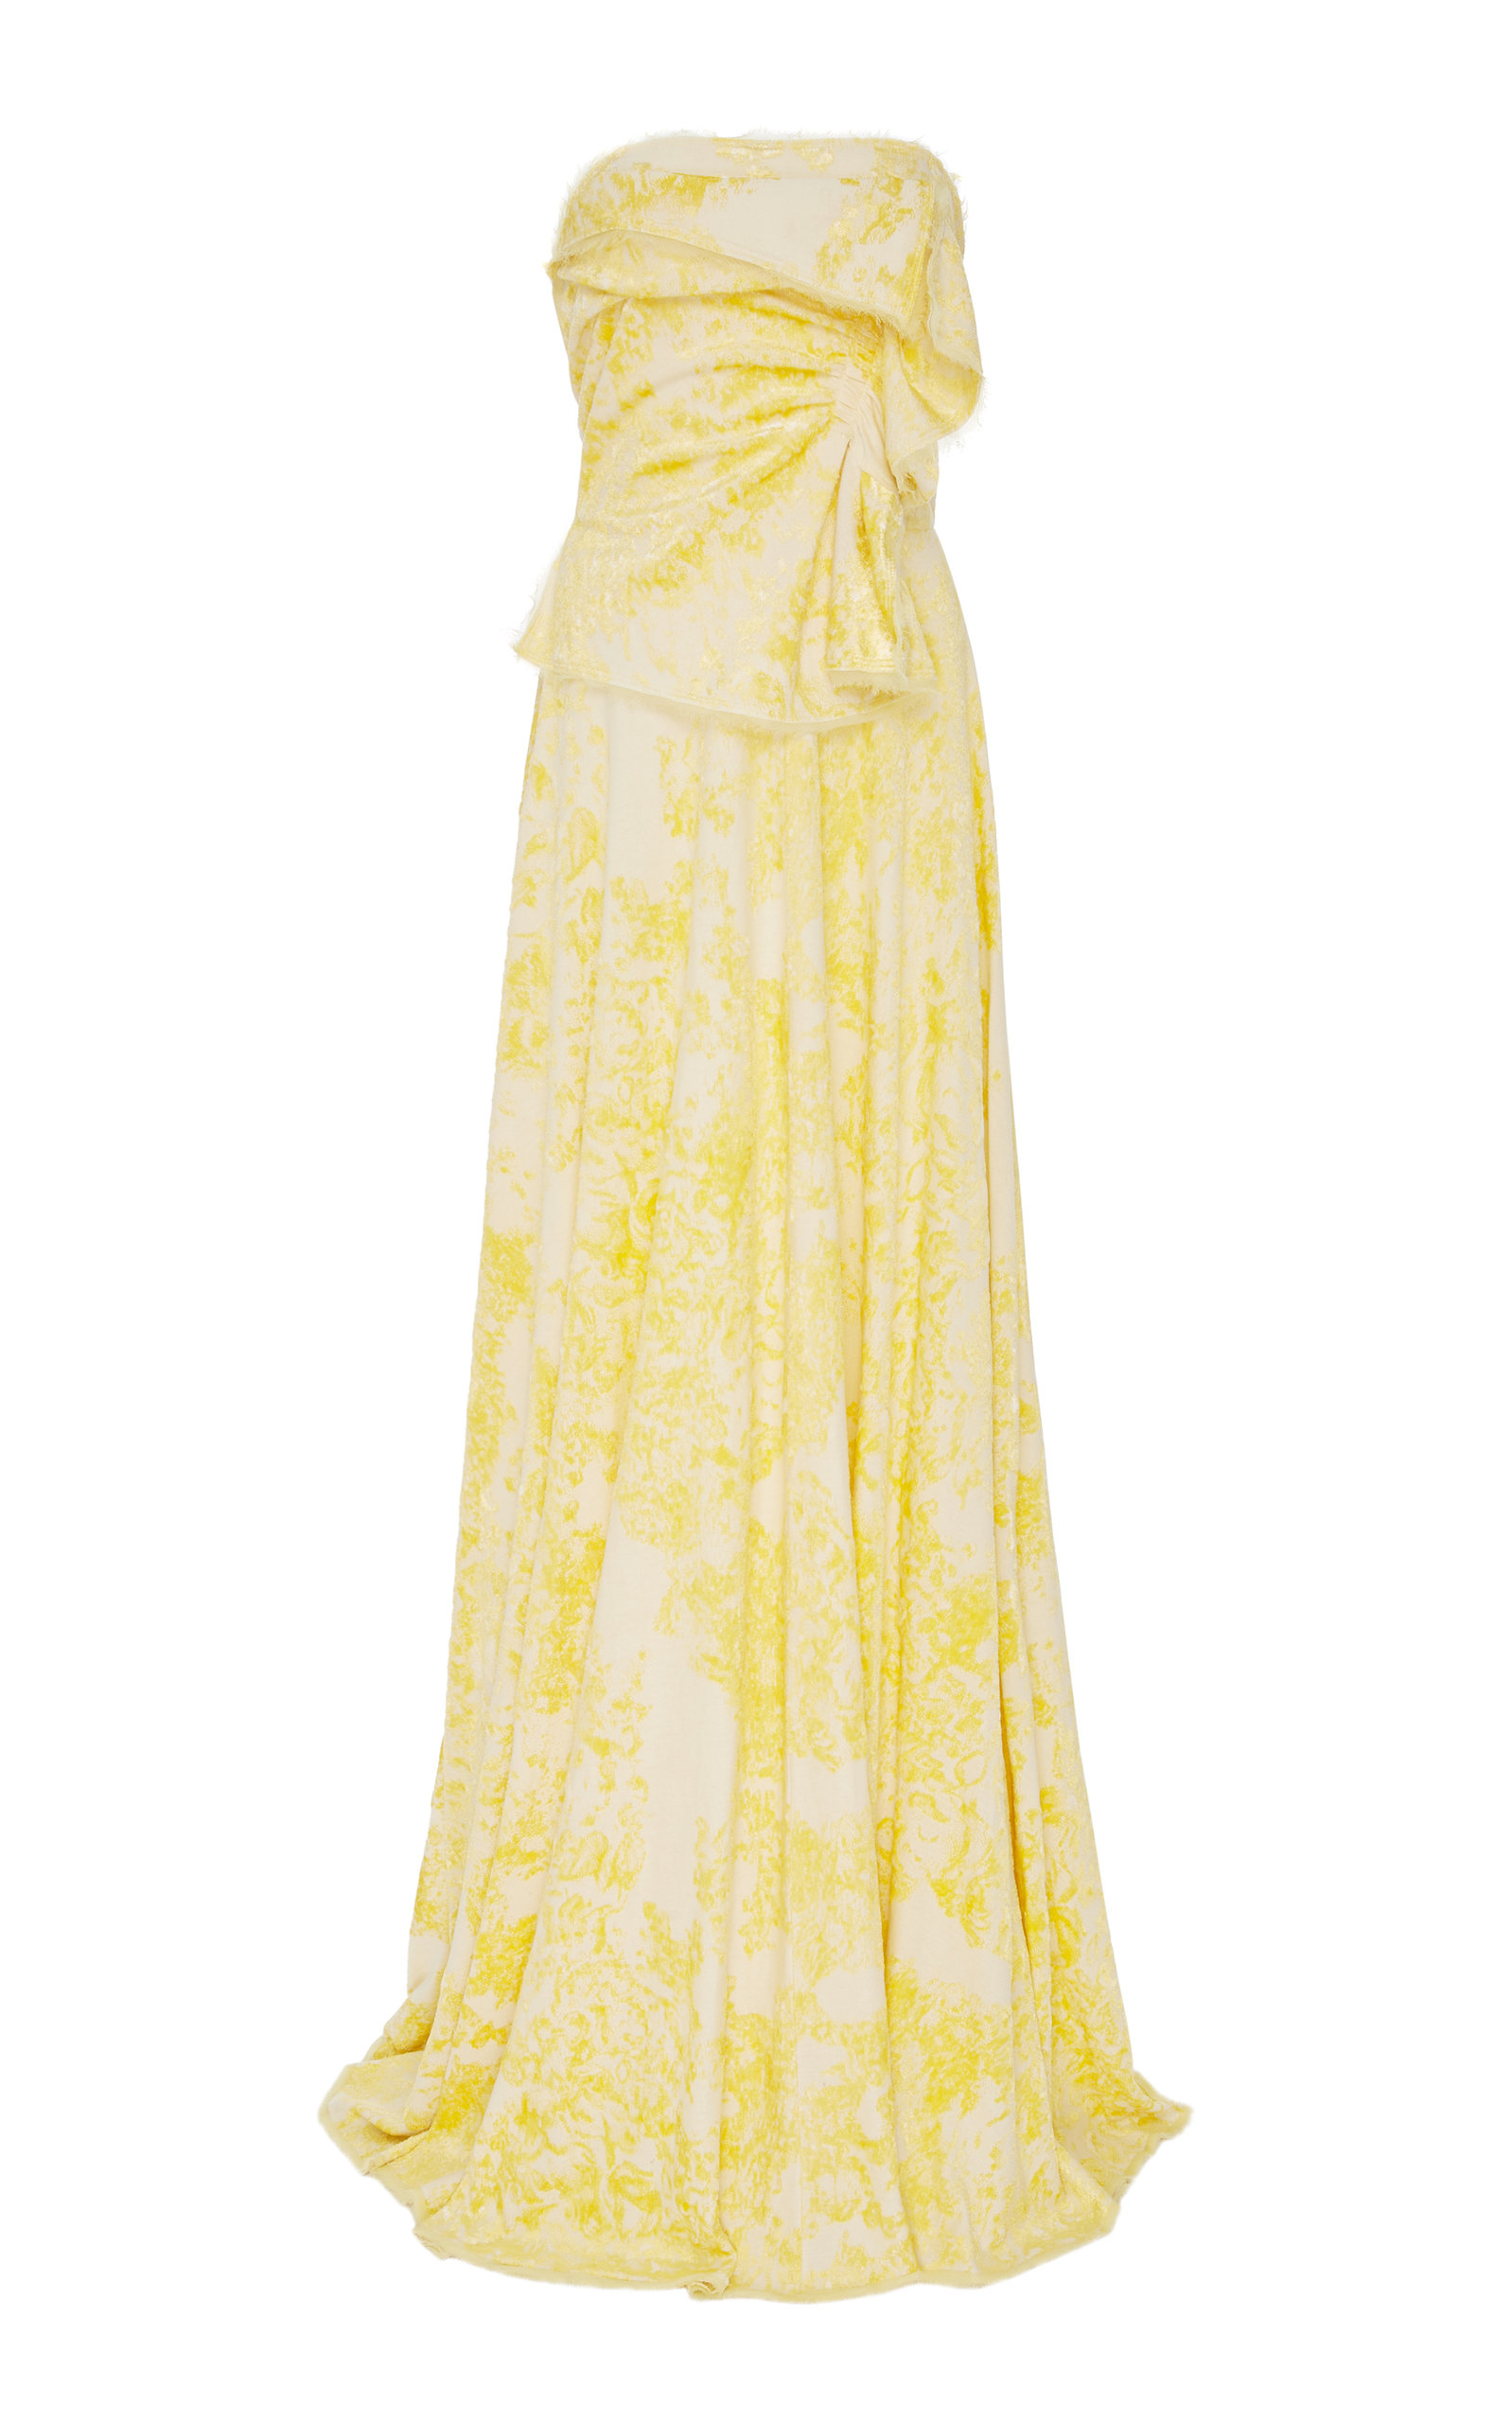 YEON M'O Exclusive Cliora Floral Jacquard Gown in Yellow